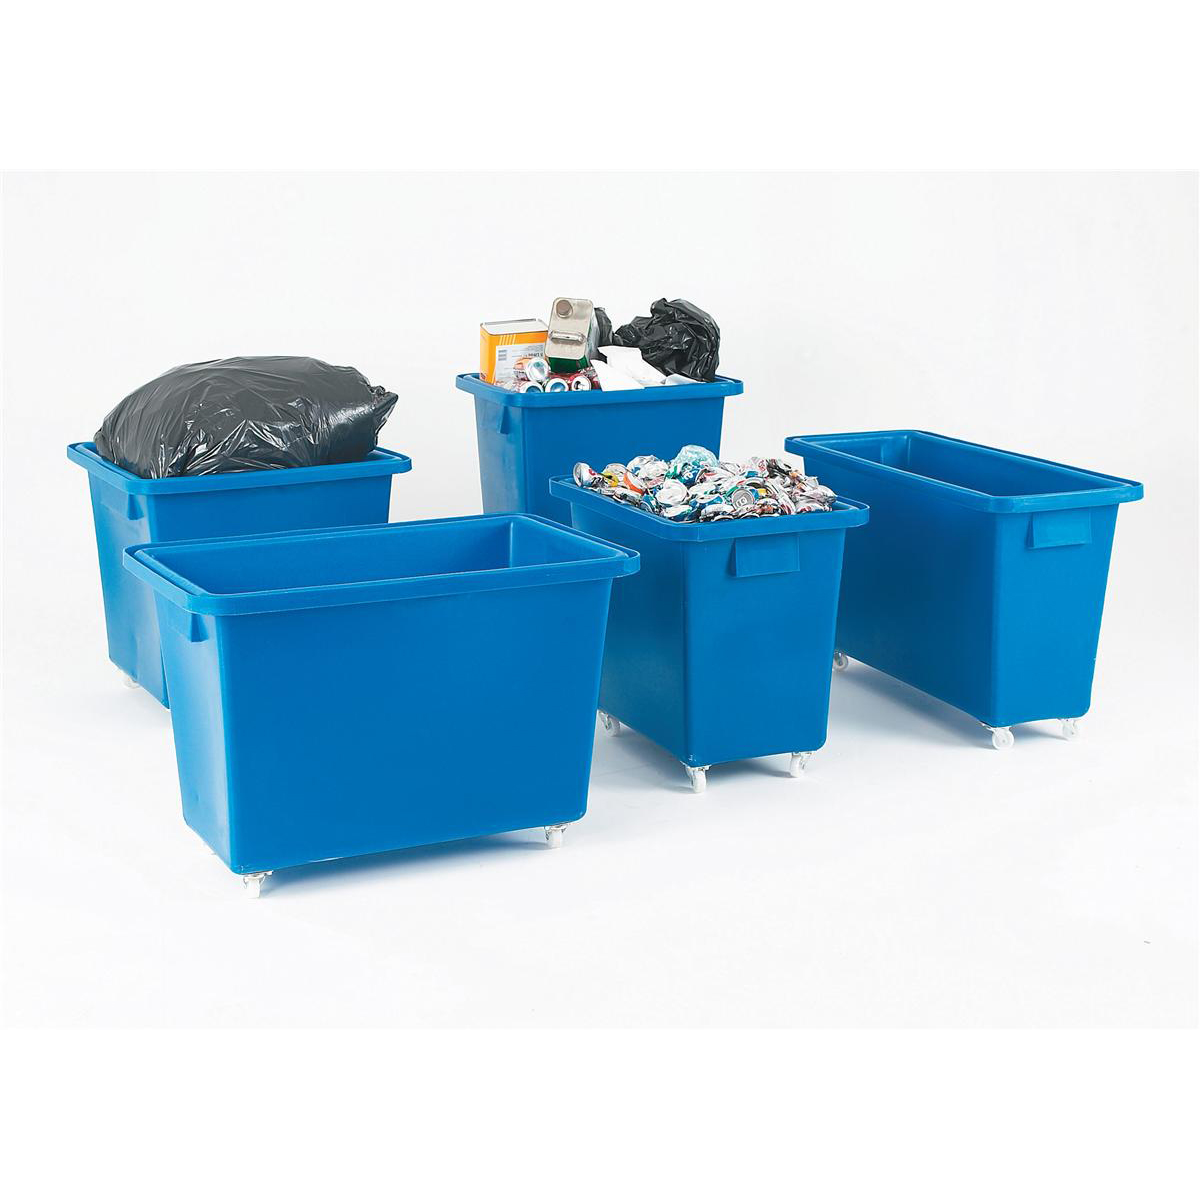 Recycling Bins Bottle Skip Four Castors Medium Density Polyethylene 625x570x570mm Royal Blue